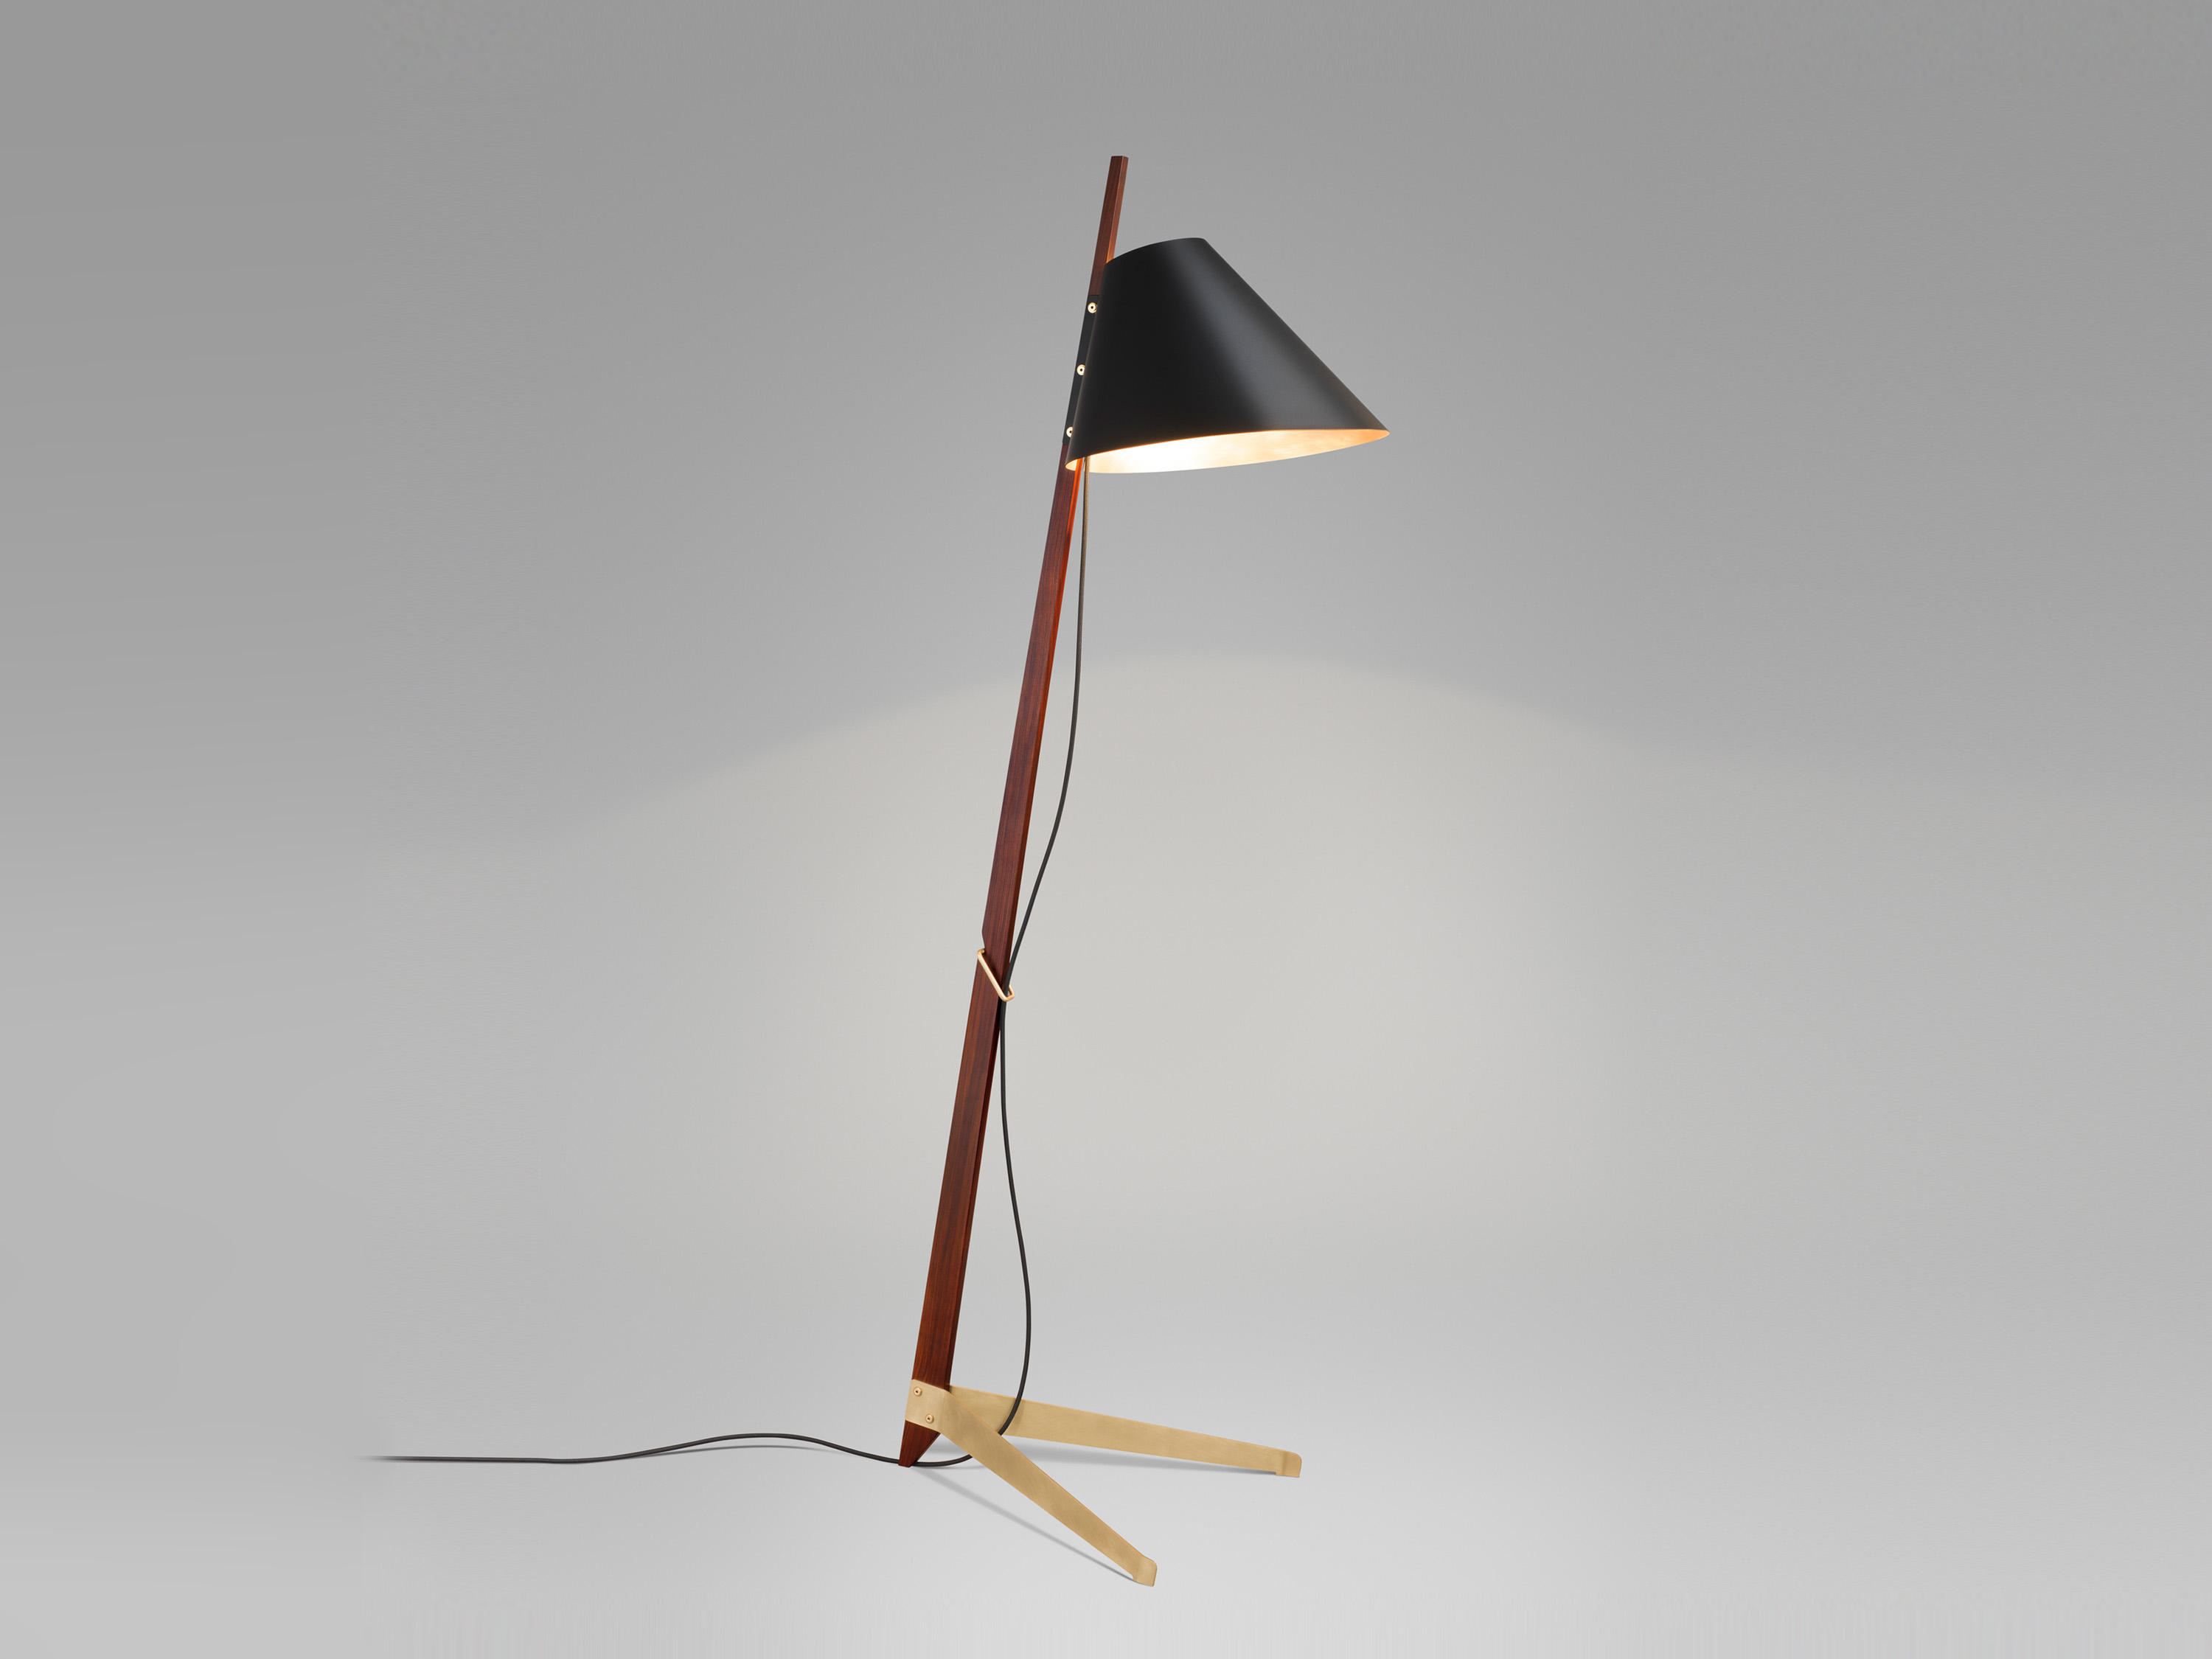 Billy Bl Floor Lamp Ilse Crawford Edition Free Standing